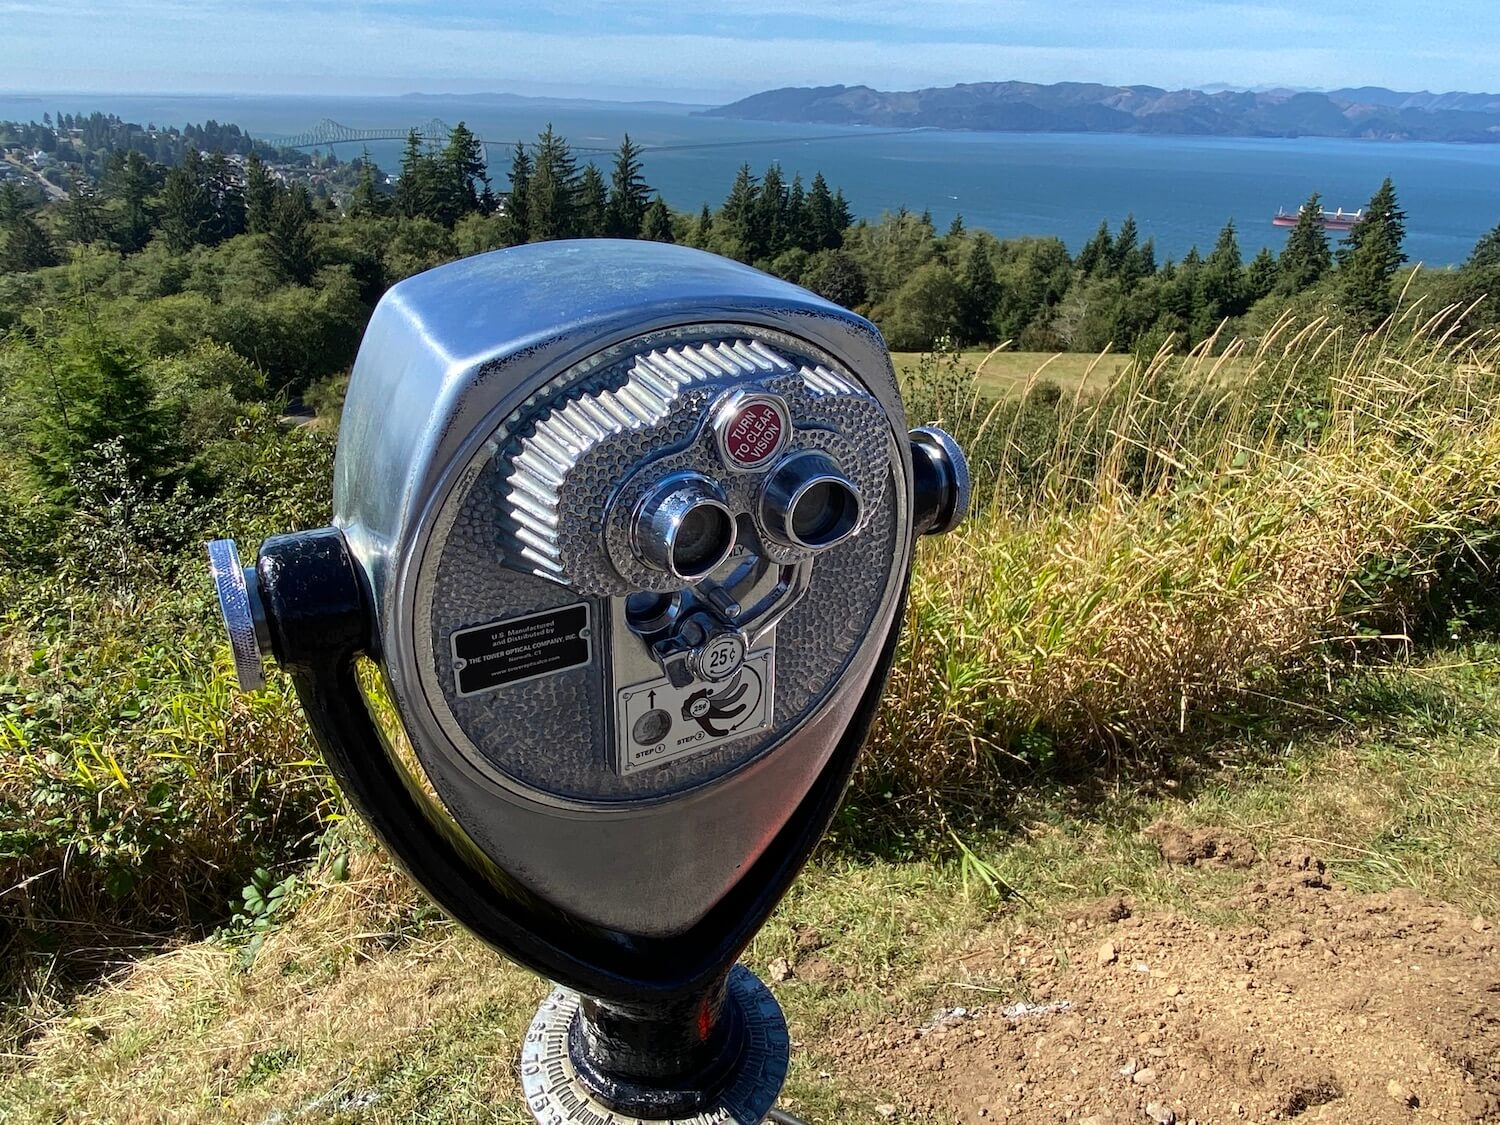 A chrome mechanical binocular will offer a closer look at the sights in the background for only 25 cents. The grass trails down to evergreen trees and eventually the waters of the Columbia River.